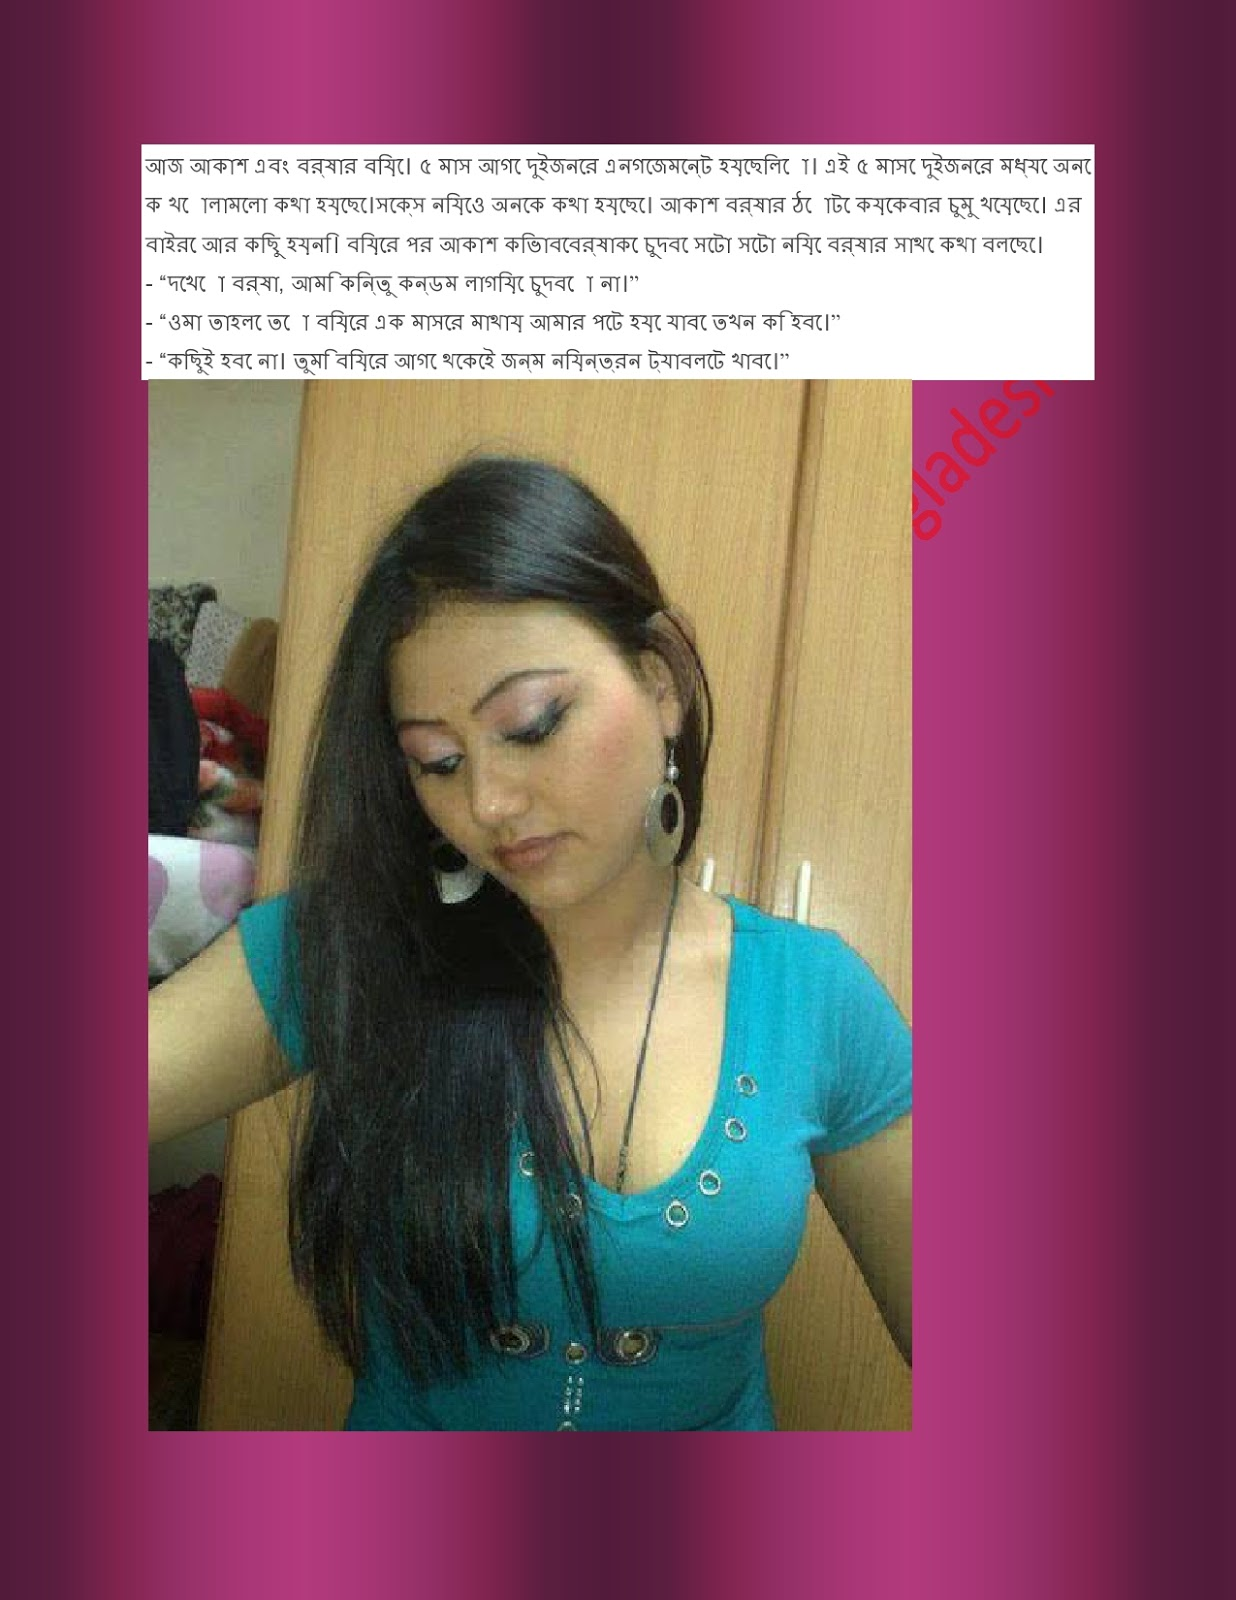 Remarkable, rather bangladeshi girl bangla choti sex accept